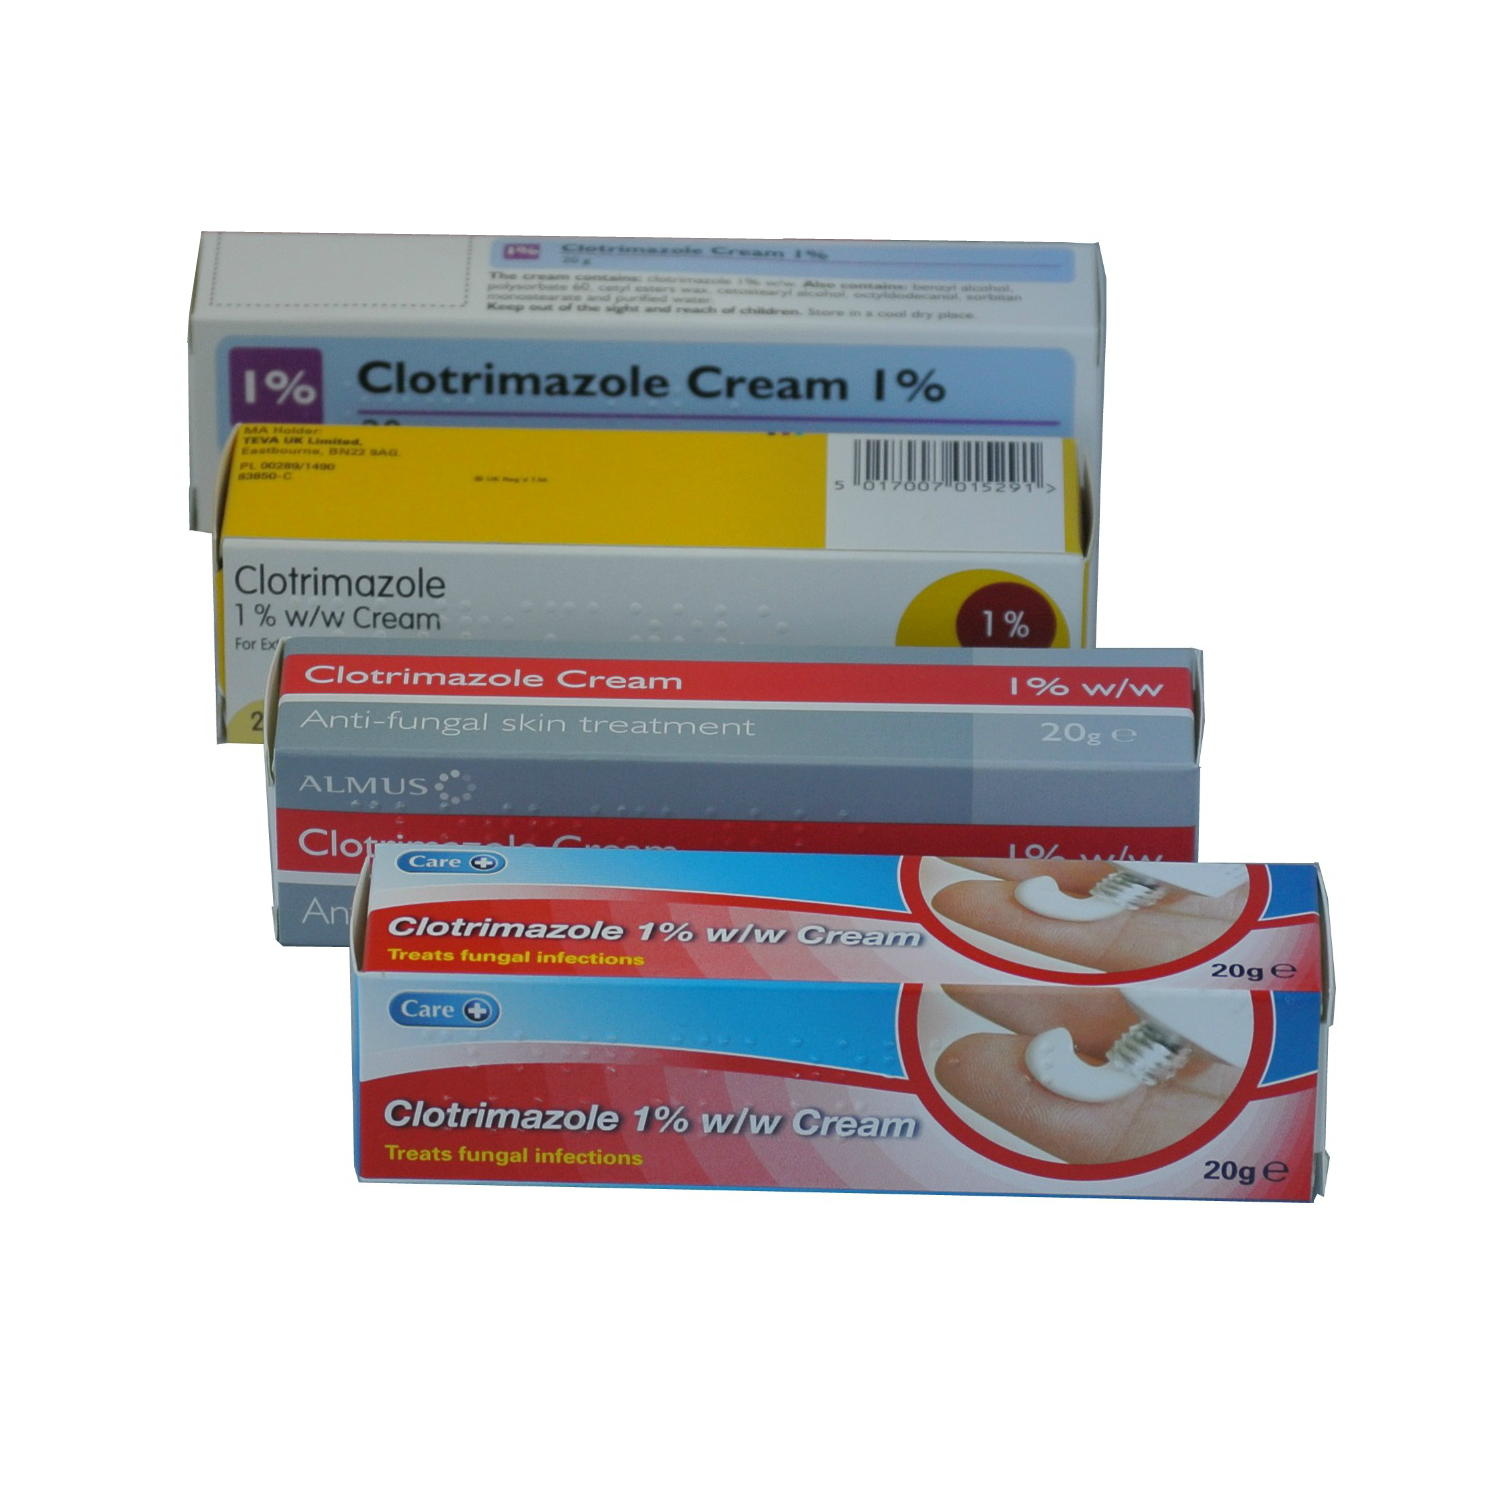 Four boxes of CLOTRIMAZOLE cream.